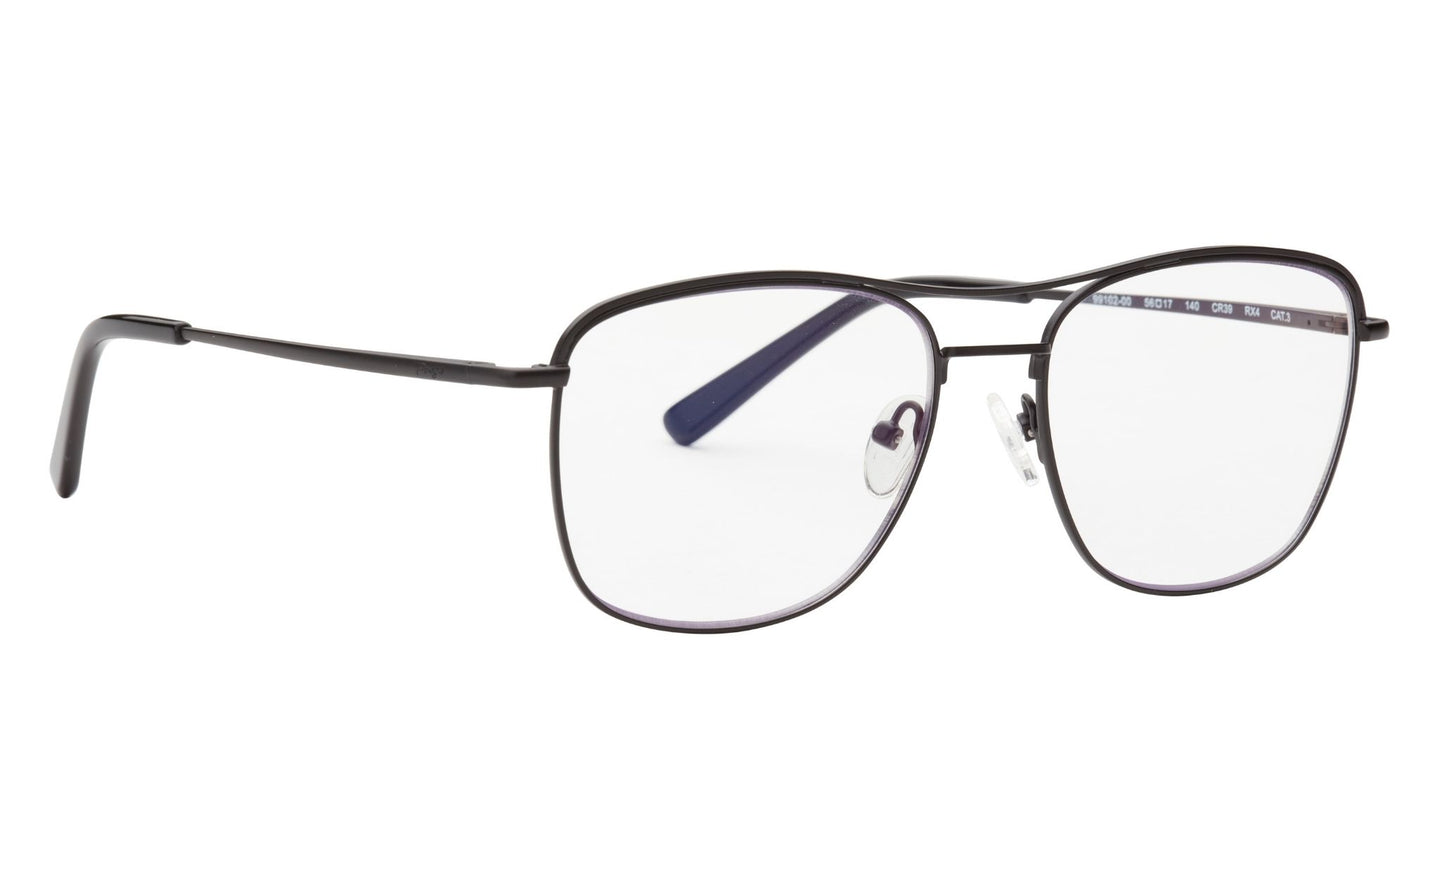 Prego - Pistoia - Pilot Bluelight Glasses